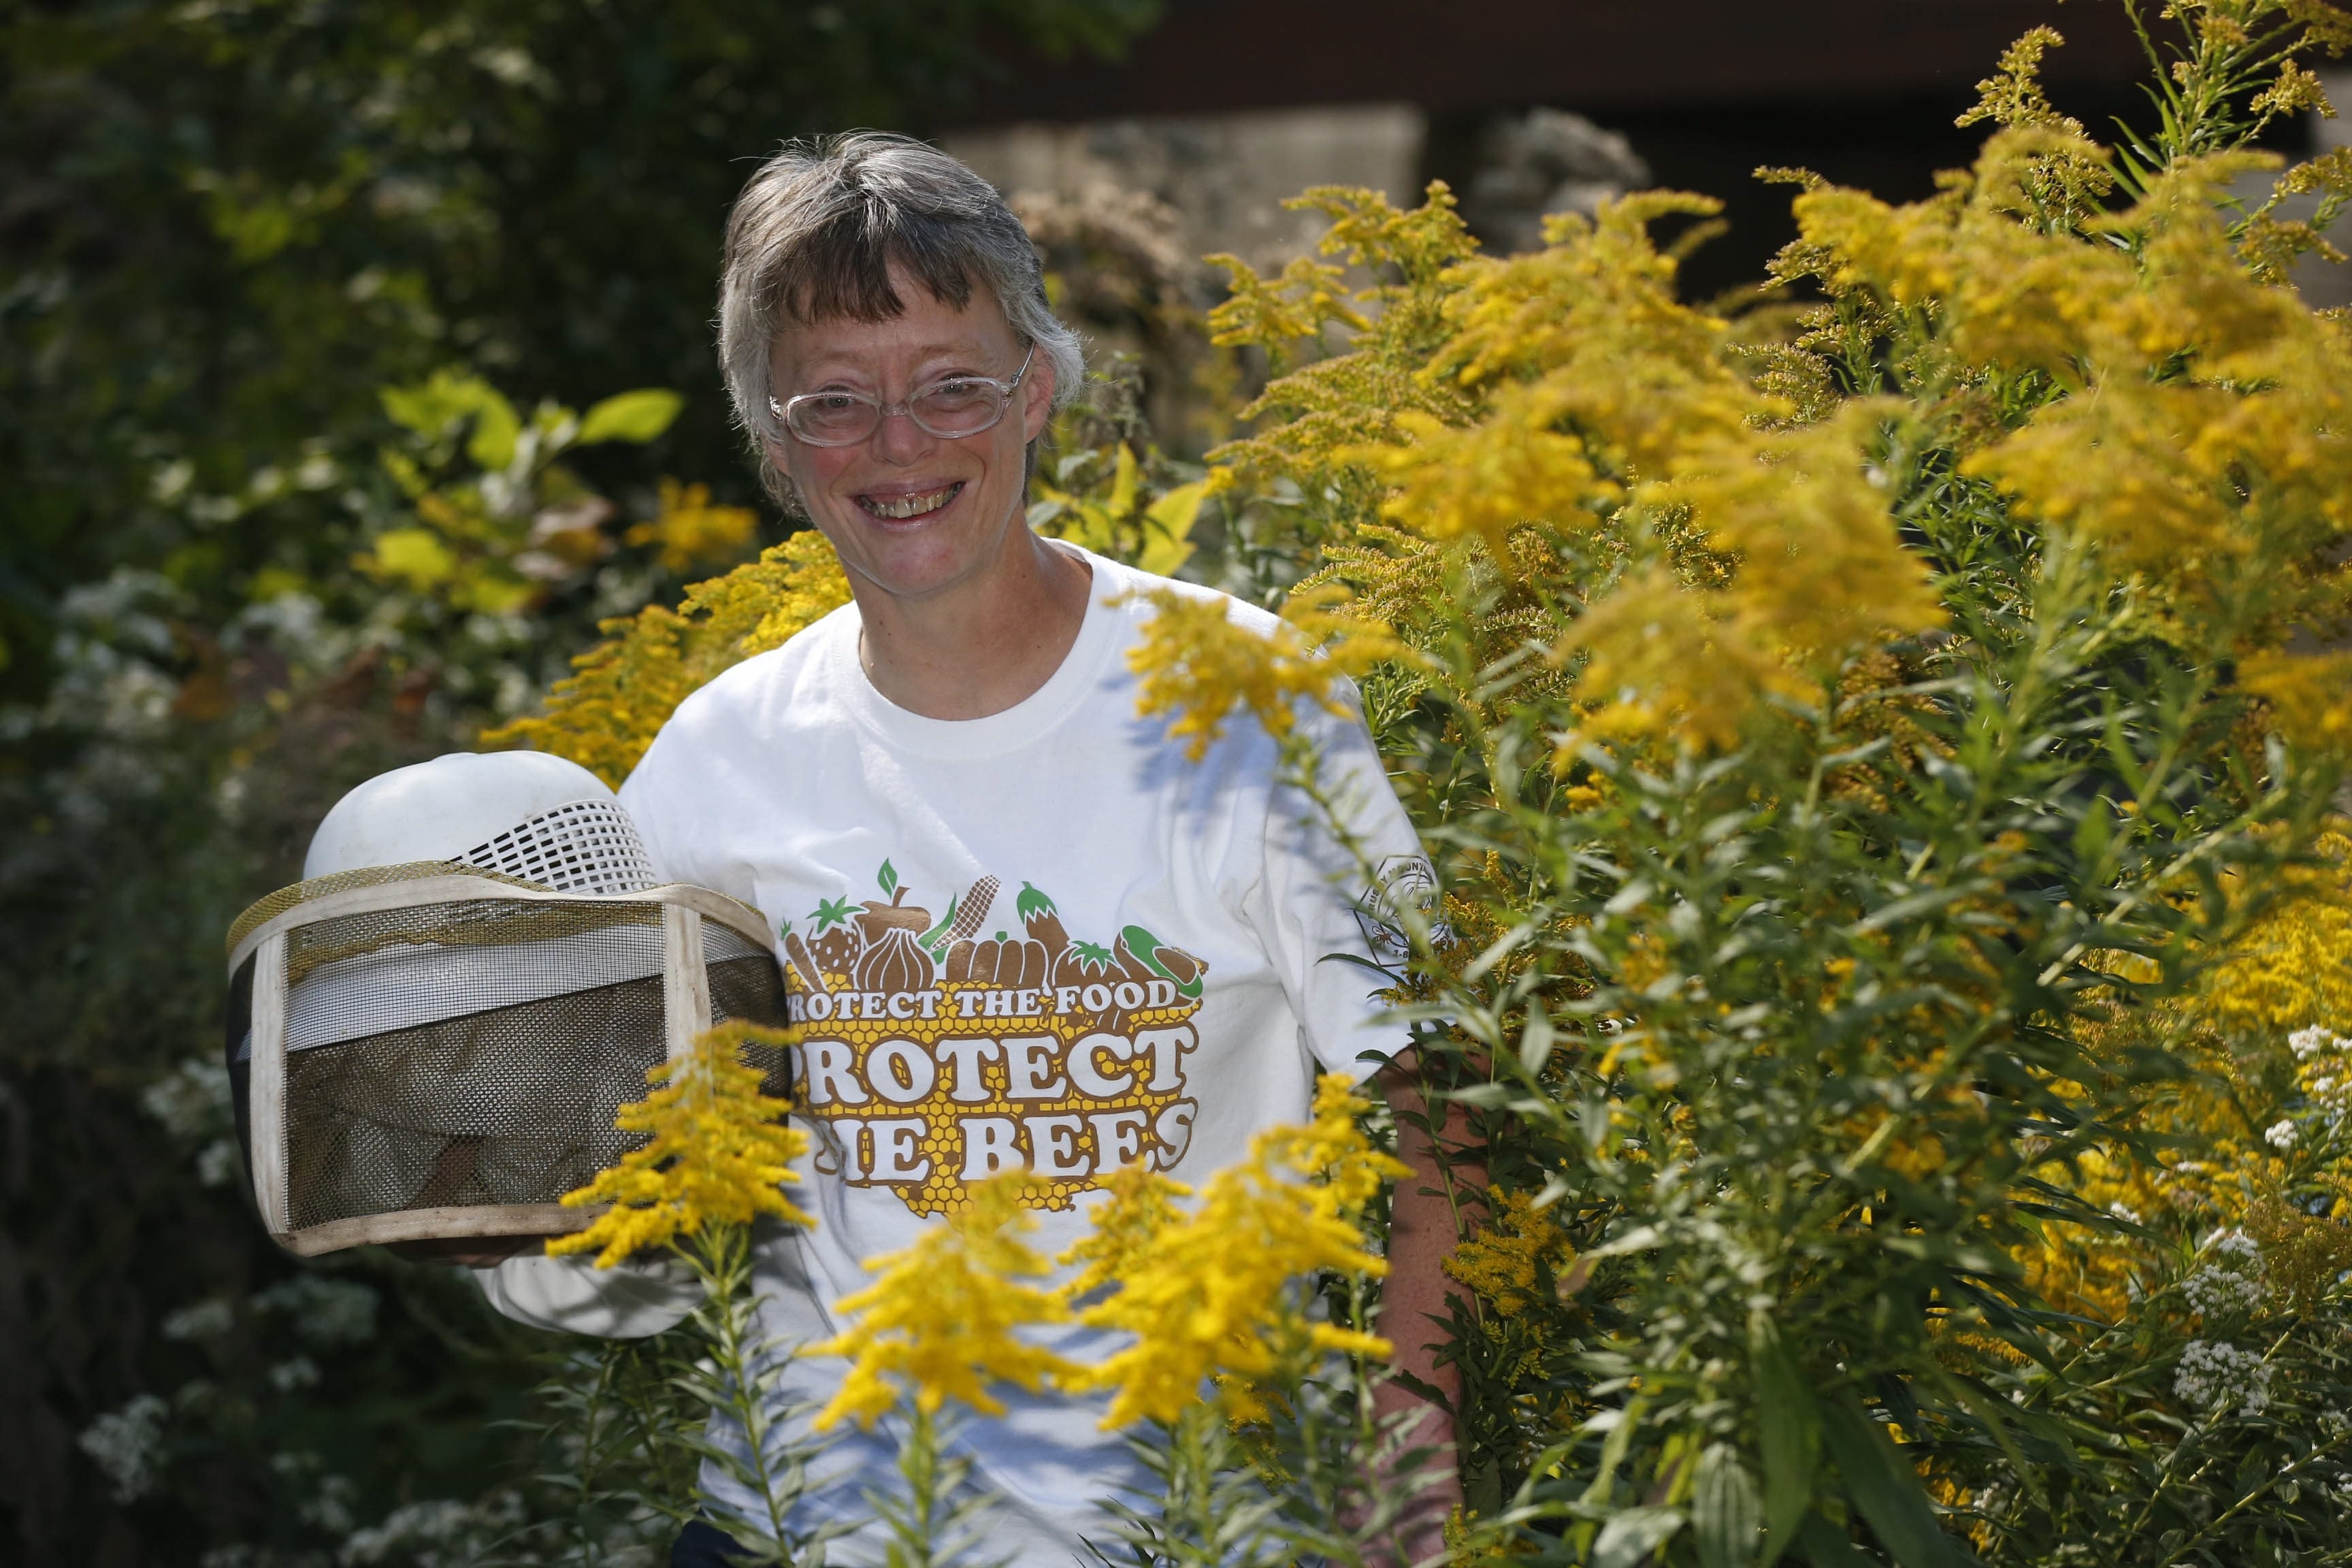 Geri Hens runs Hens Honey Bee Farm in Pendleton. She maintains 1,000 bee colonies in 11 counties in New York State. Bee farming is a second career for the former teacher who had to retire after she was the victim in a drunken driving crash.